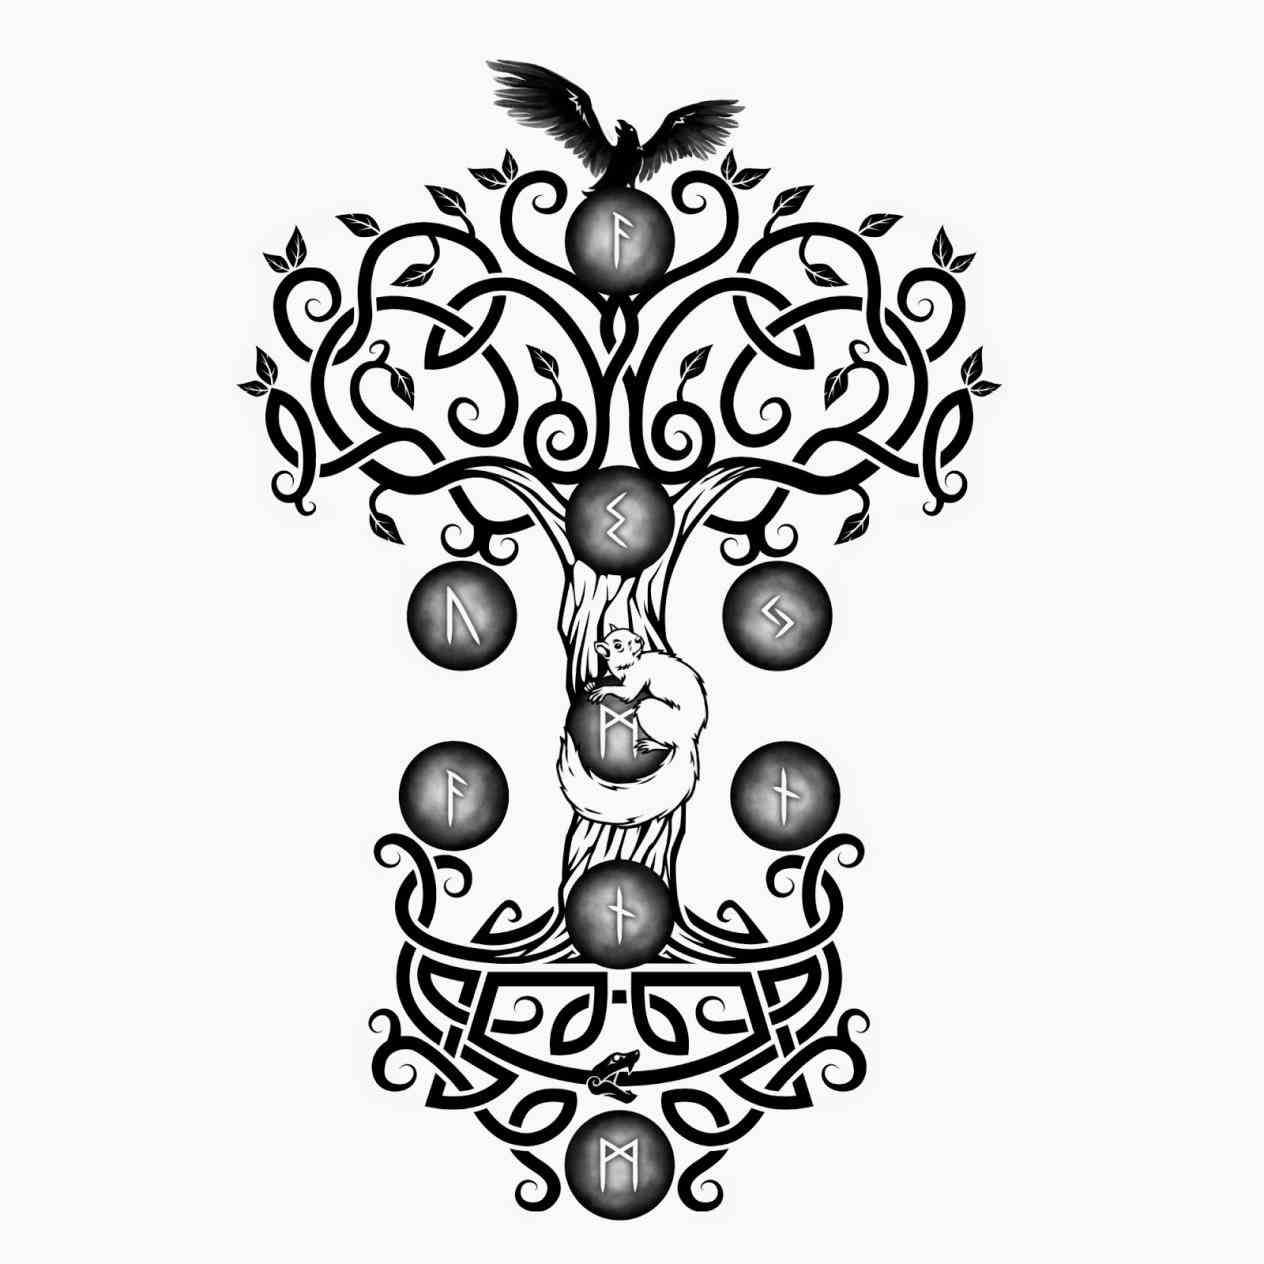 Yggdrasil tattoo clipart png Norse Tattoos Yggdrasil | Tattoo | Yggdrasil tattoo, Norse ... png